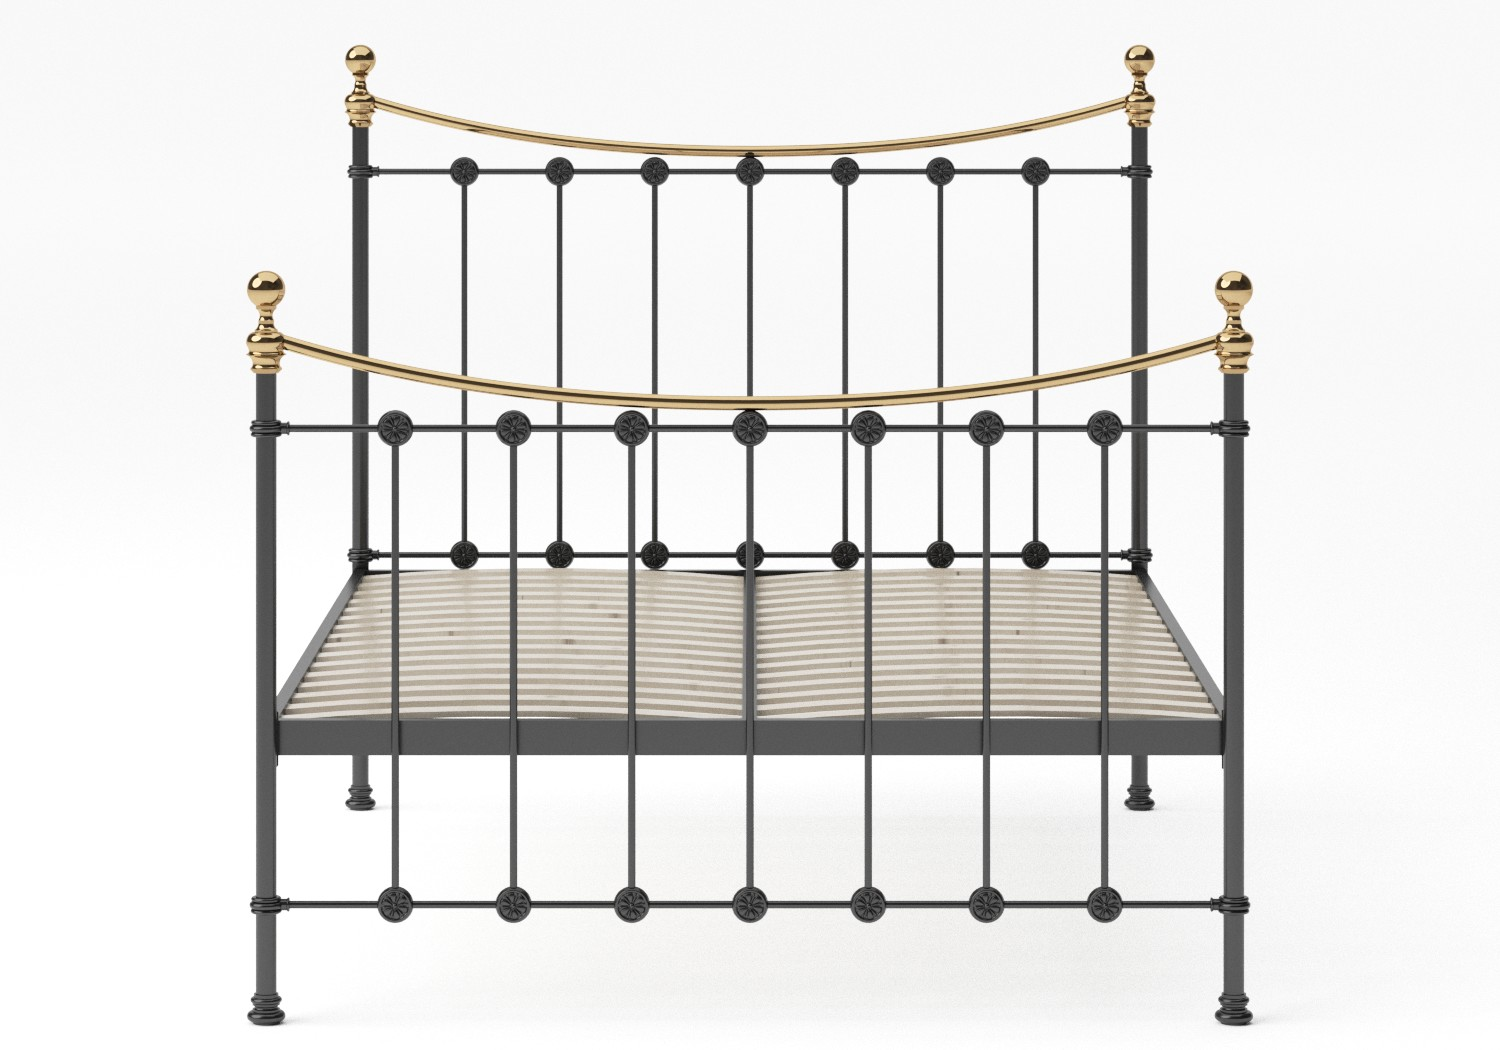 Carrick Iron/Metal Bed in Satin Black with brass details shown with slatted frame